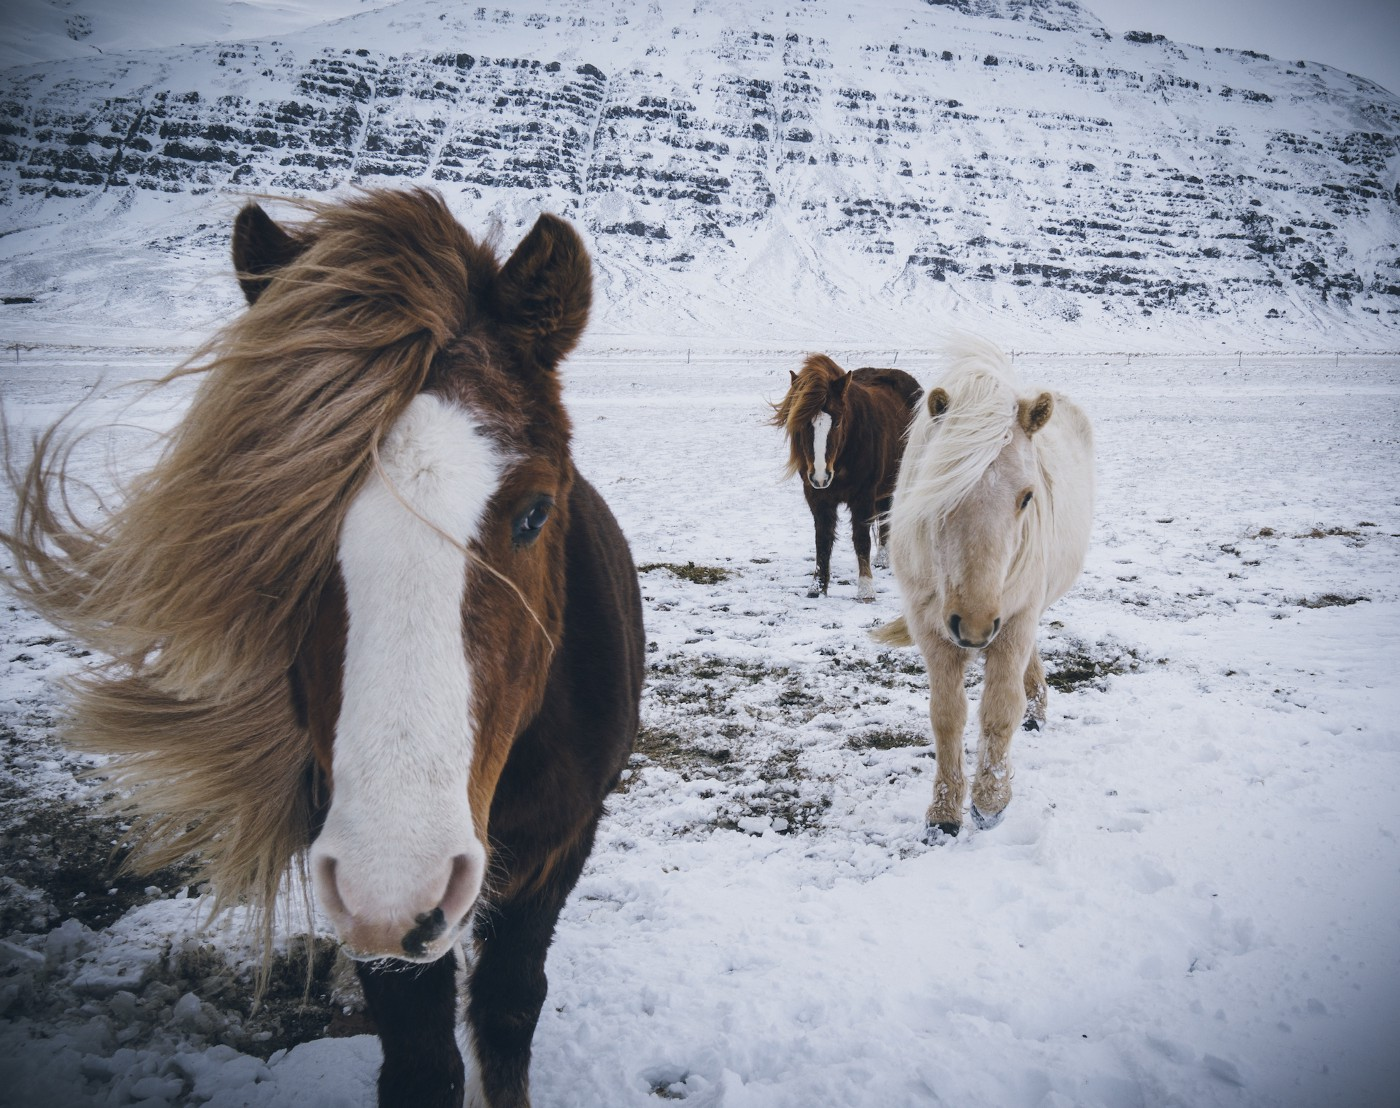 Icelandic horses in the snow.